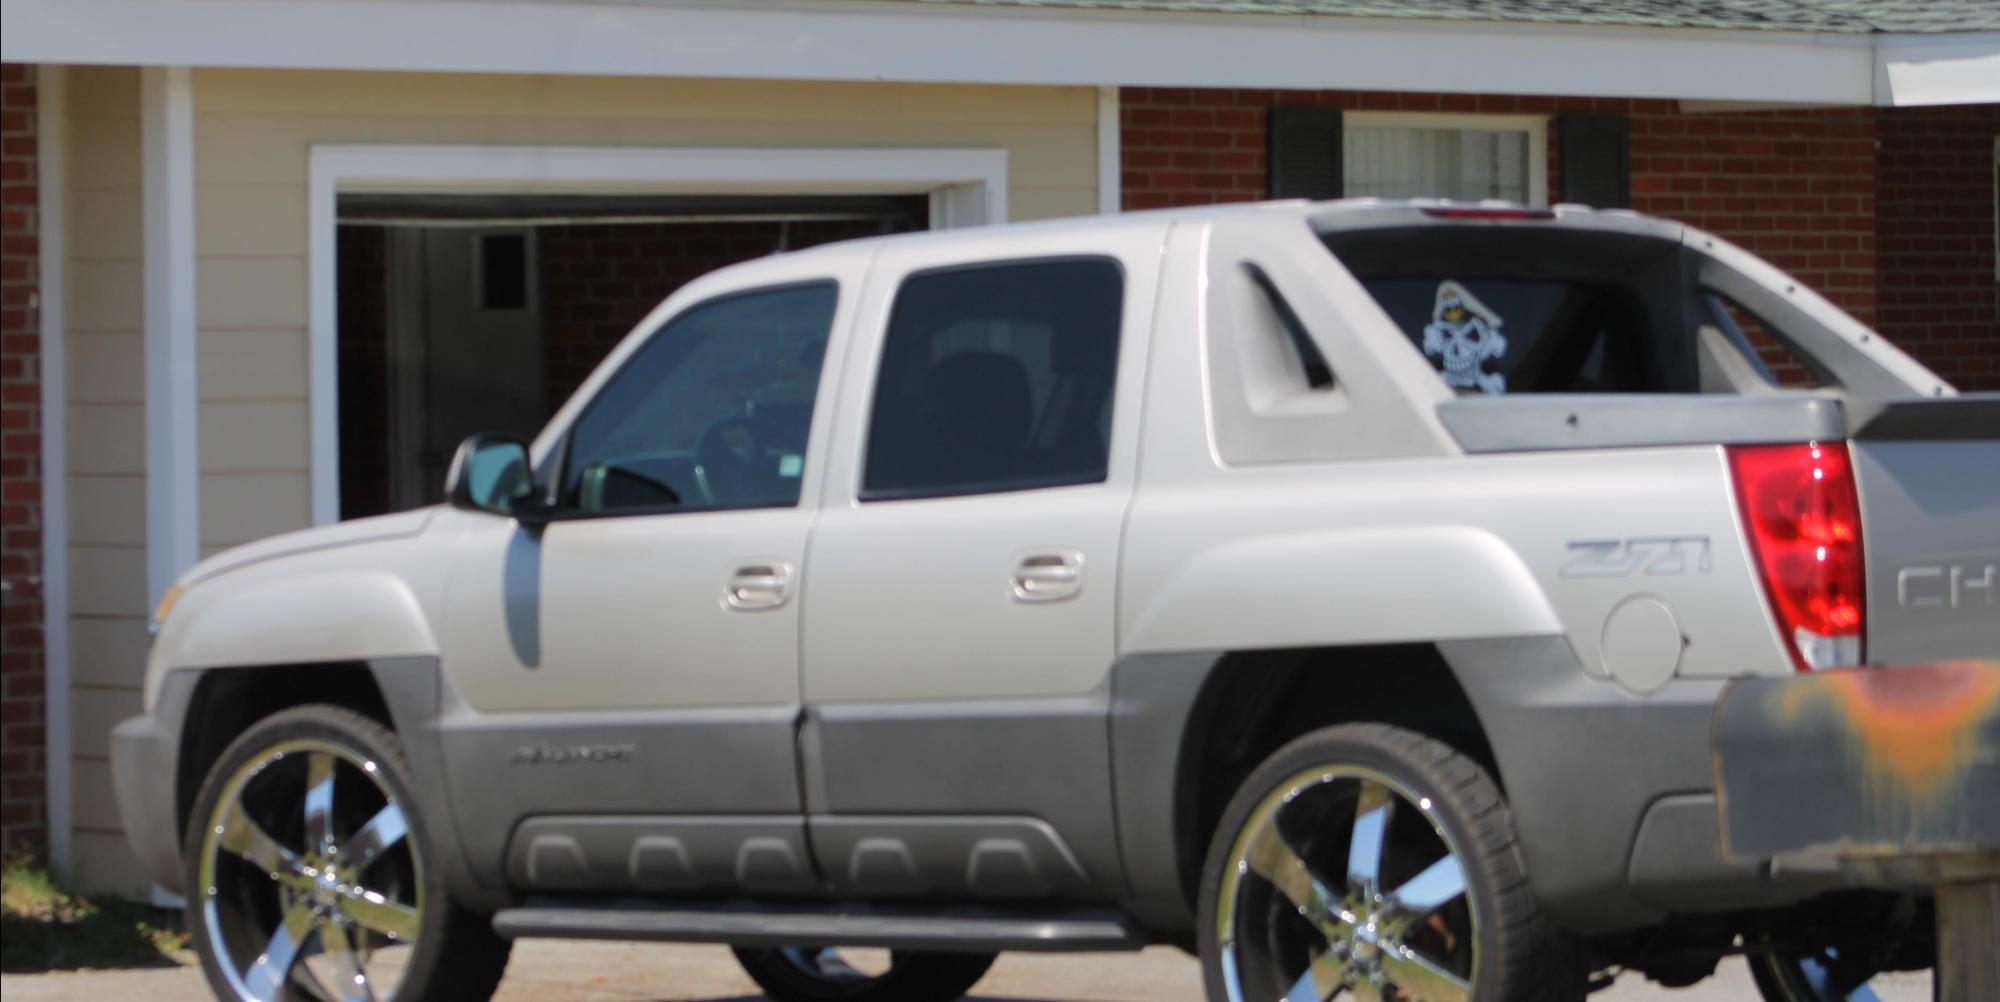 hight resolution of donklover 2004 chevrolet avalanche 1500